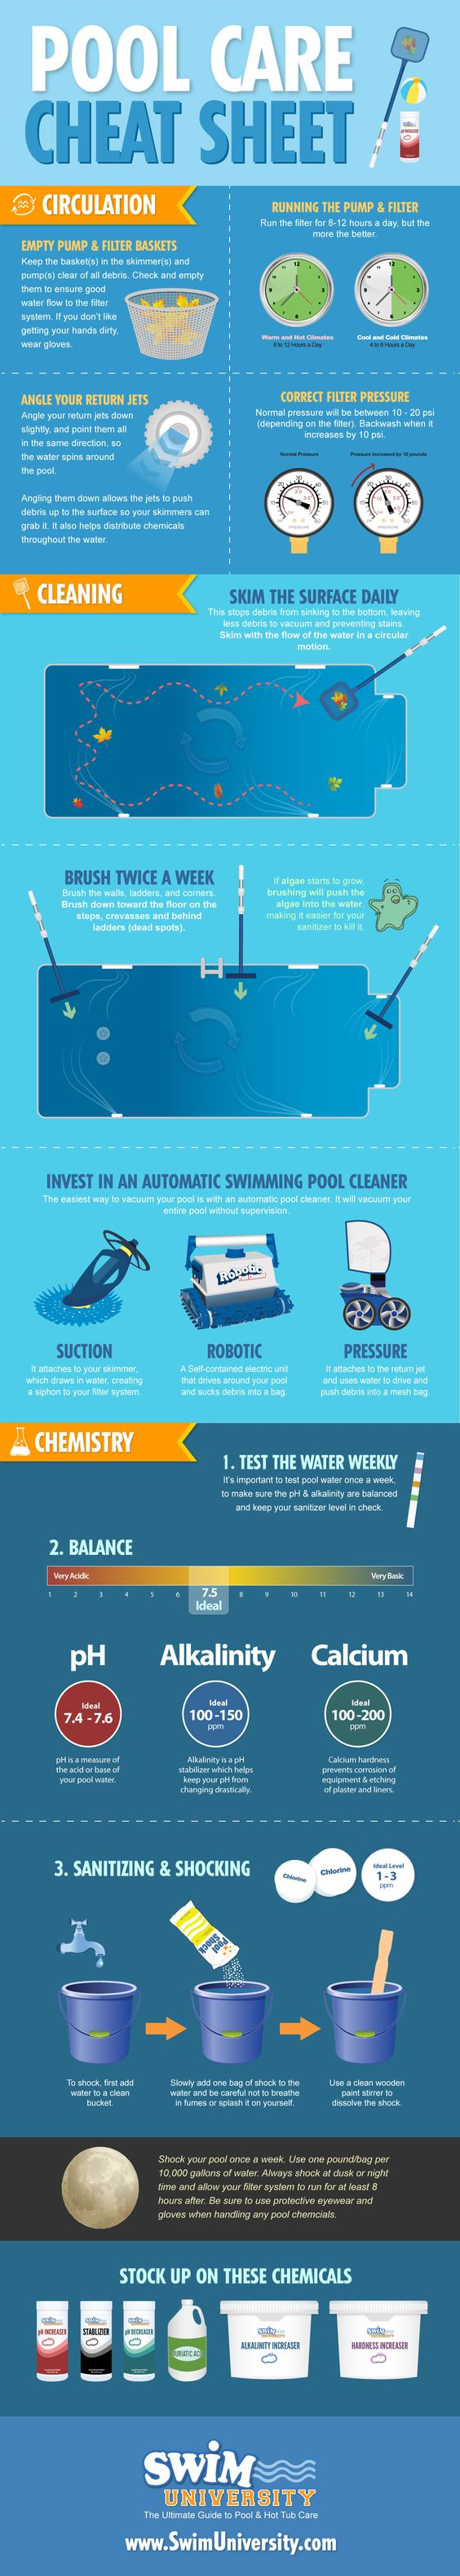 Pools cheat sheets and swimming pools on pinterest - Swimming pool cleaning chemicals list ...